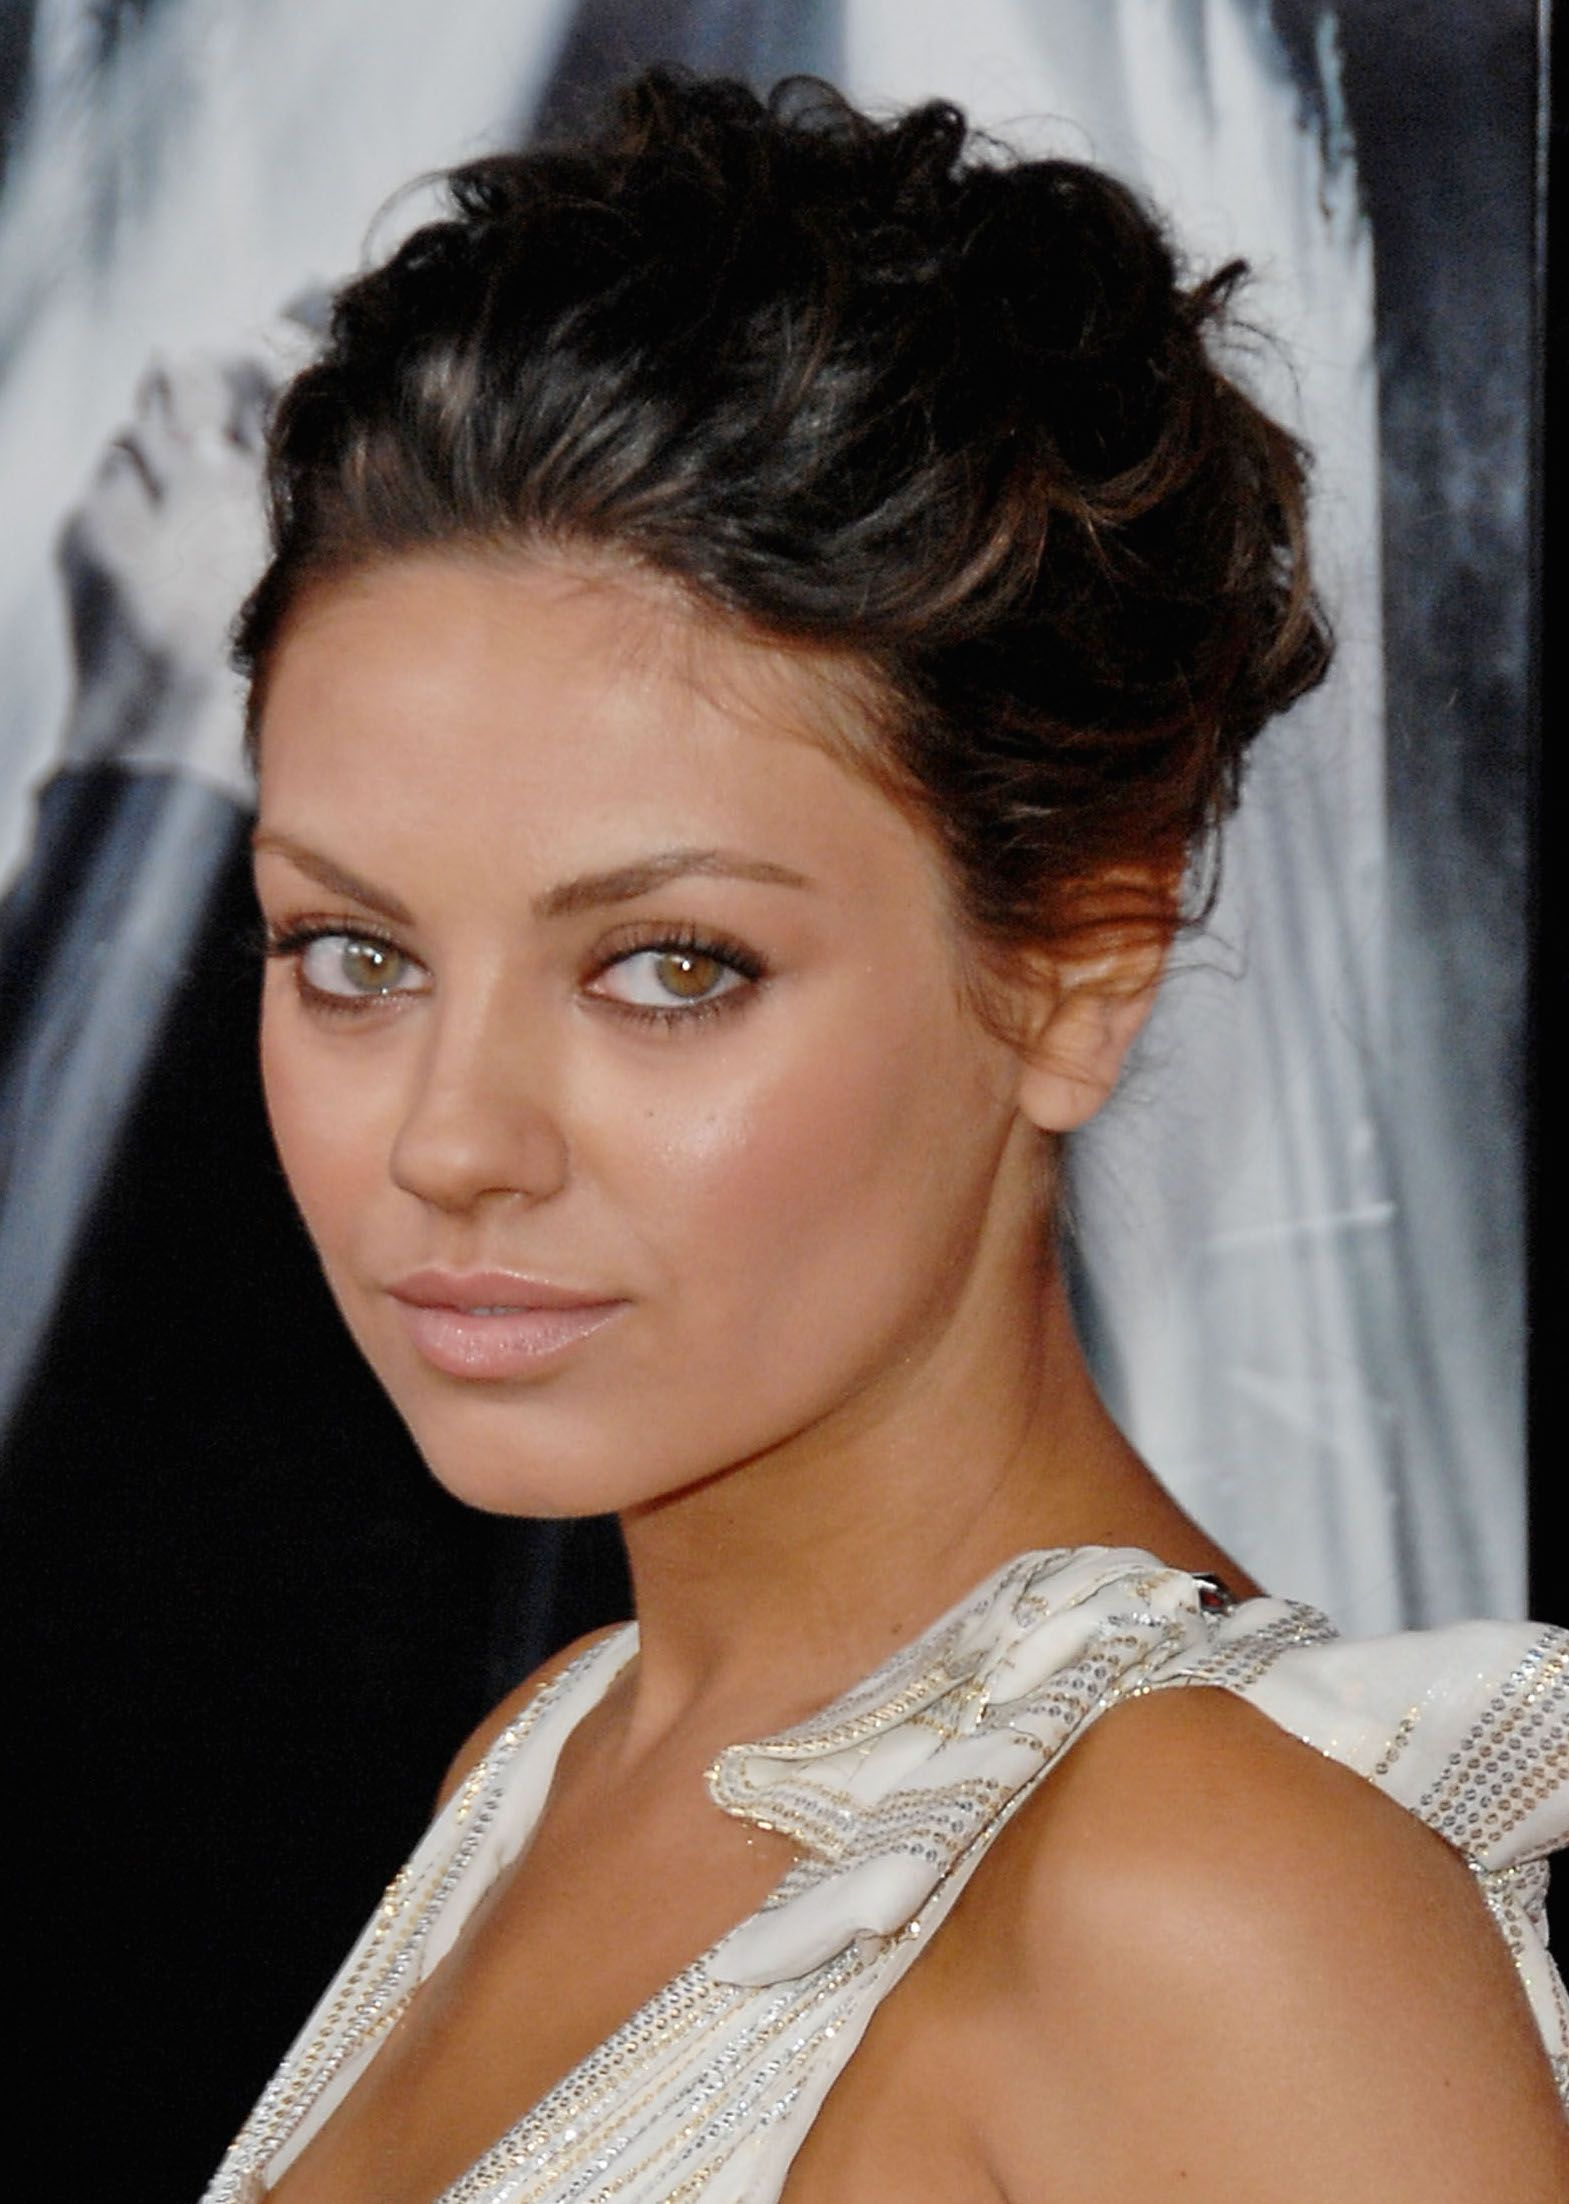 Mila Kunis Updo Hairstyles To Try Pinterest Mila Kunis Updo